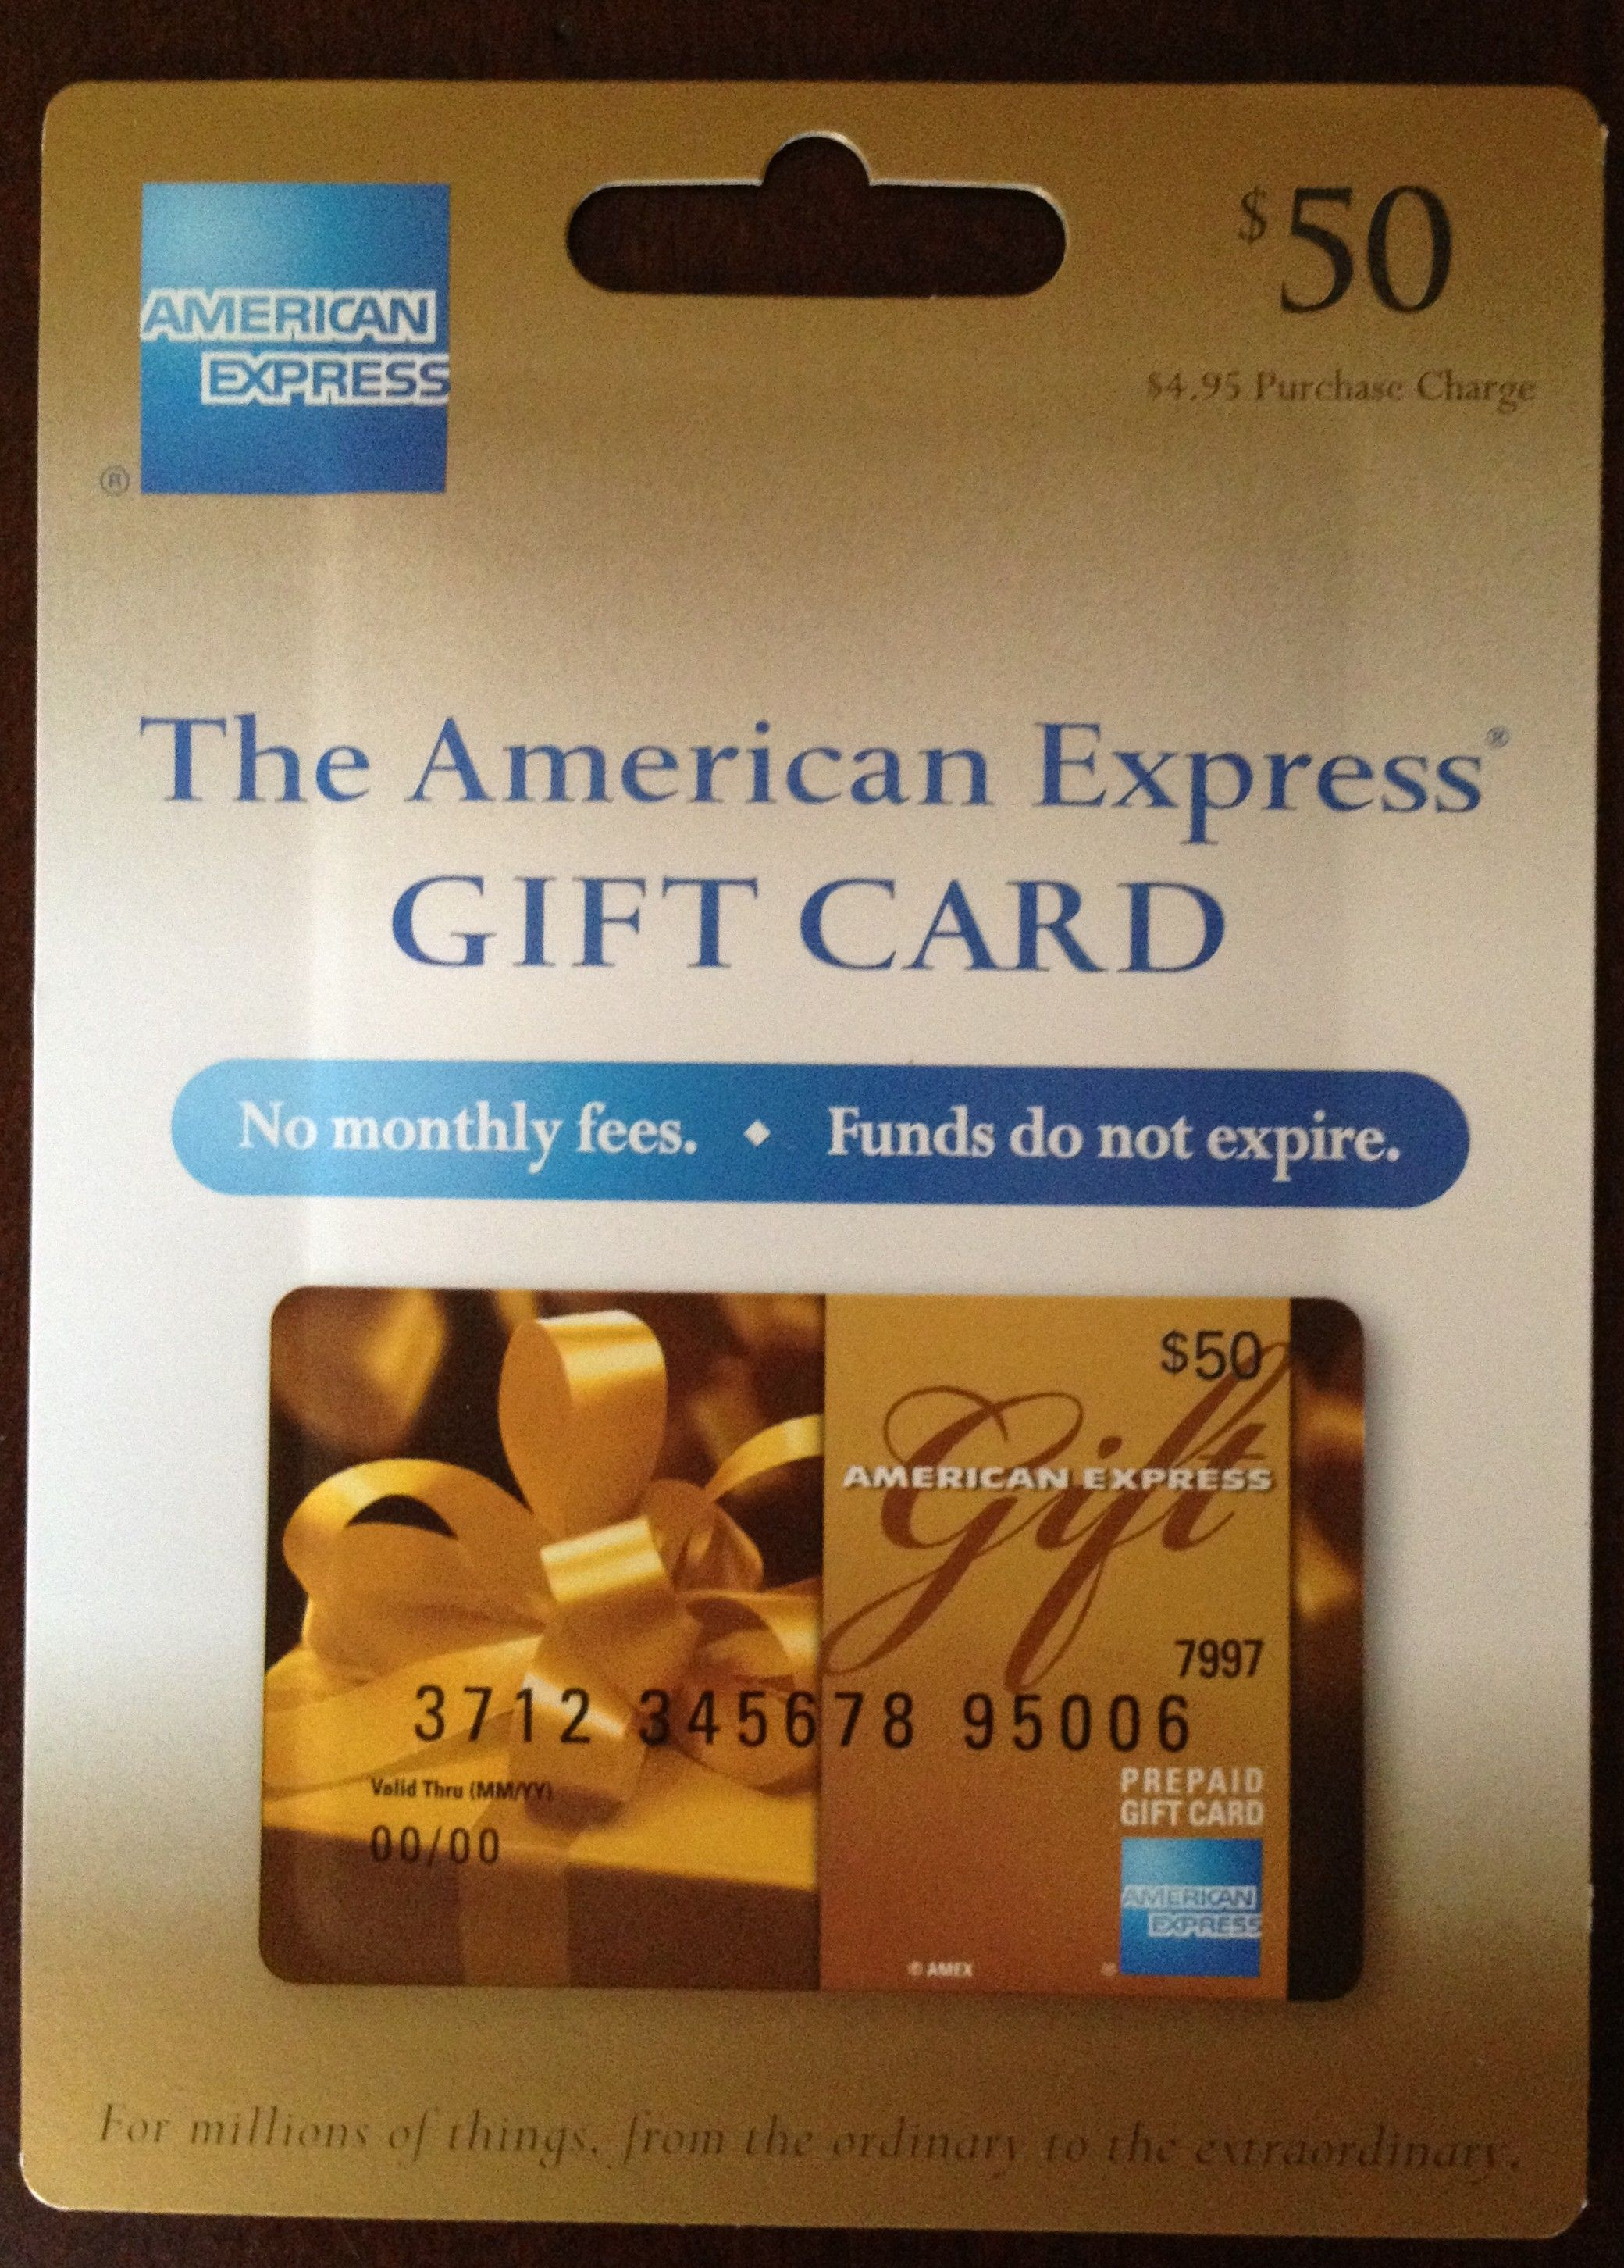 Free American Express Gift Codes cracked treasure generators free american express t card codes generator 2 Pinterest